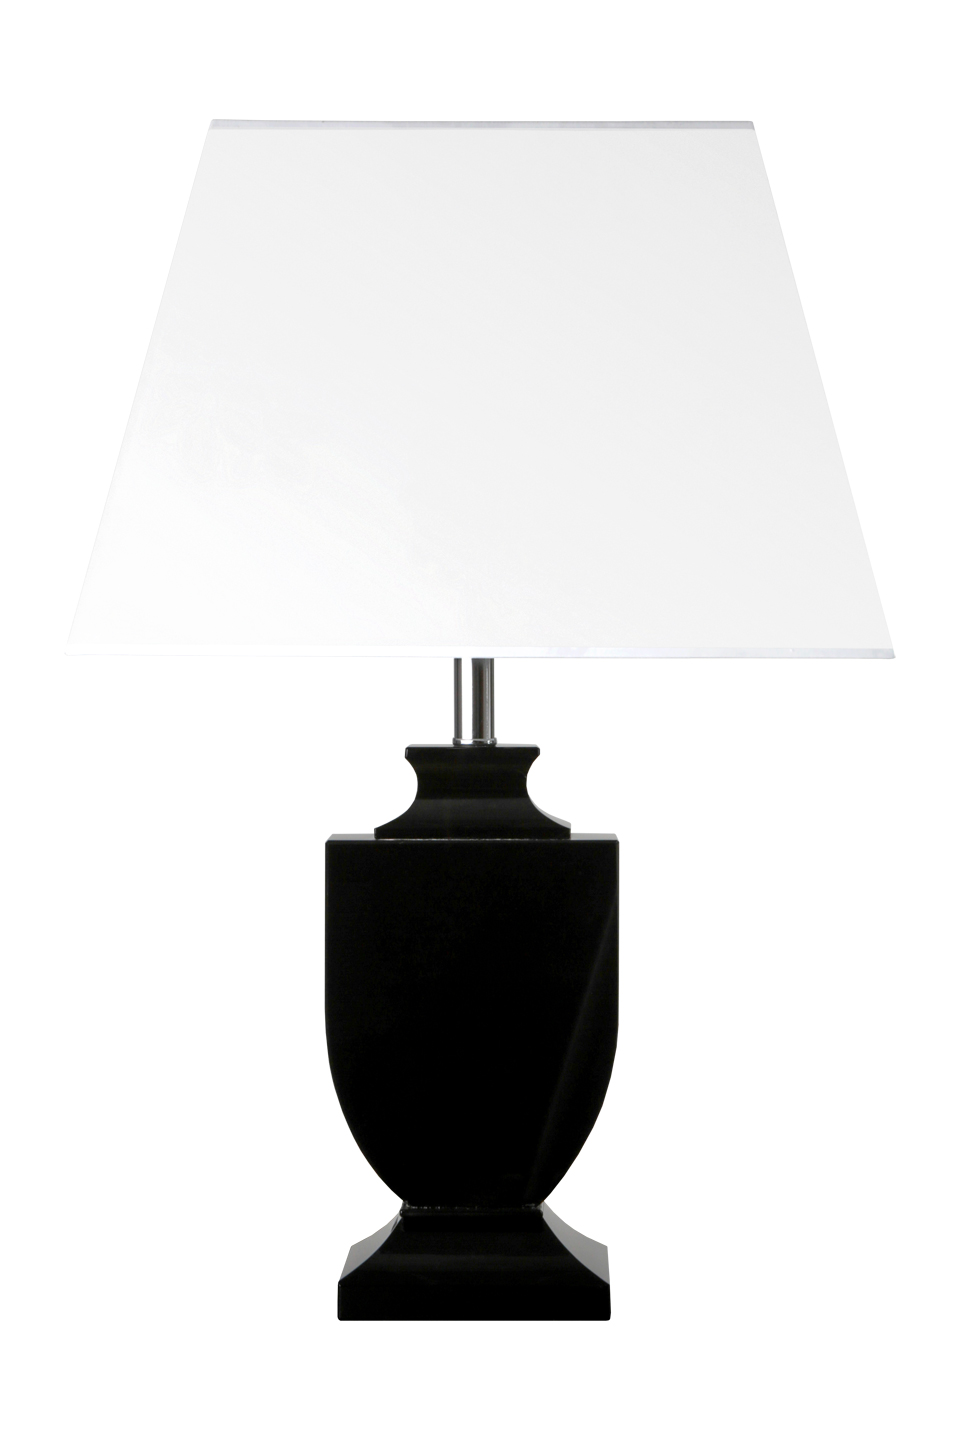 Picture of: Hymont Black Optical Glass Table Lamp Le Dauphin Classical Lamp In Ceramic French Style Made In France Ref 18110122